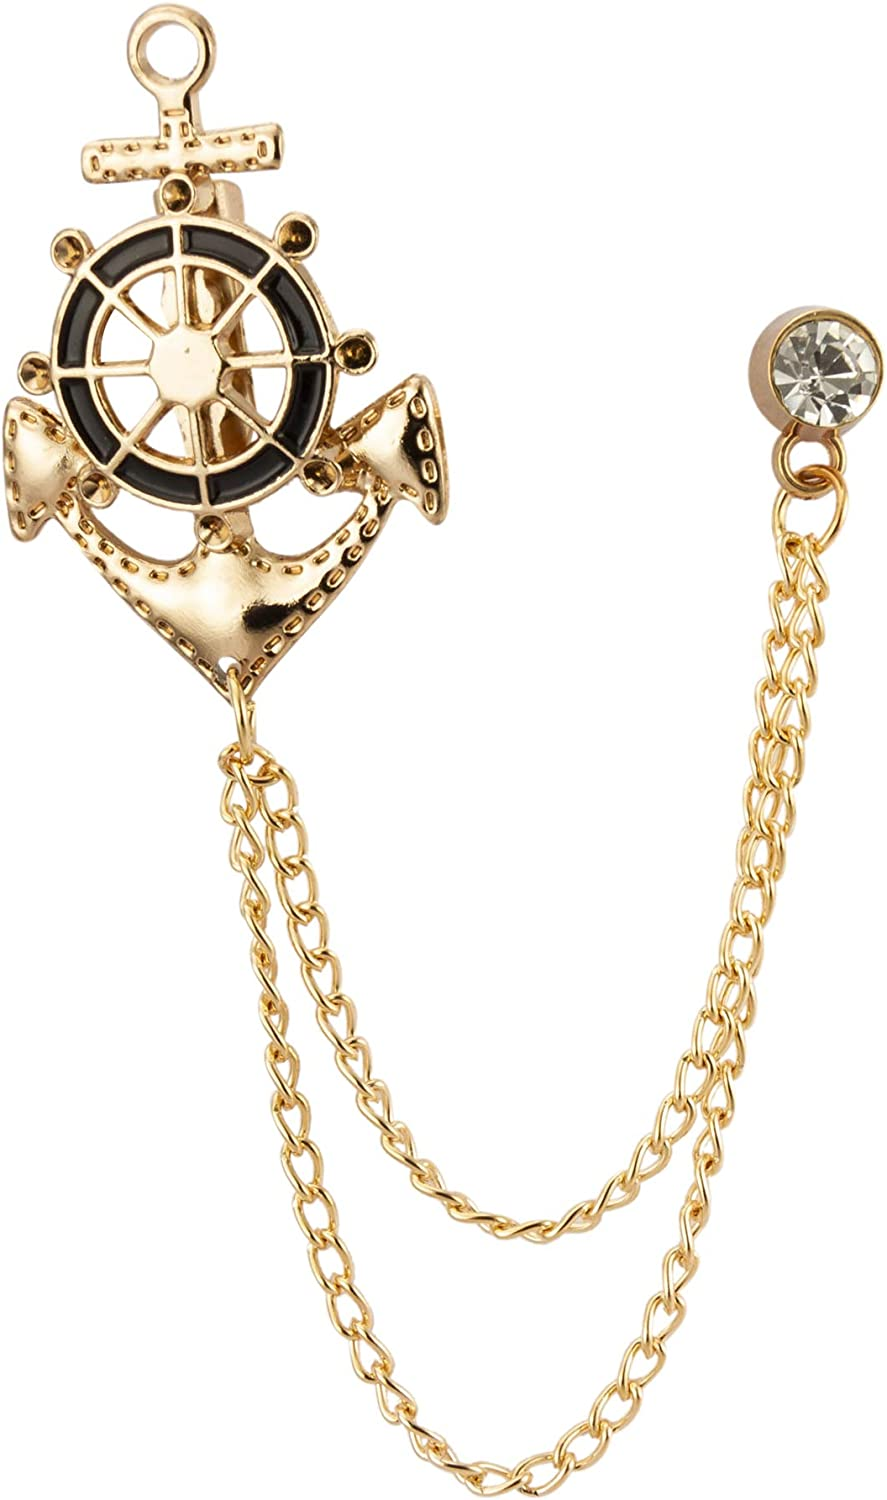 Knighthood Anchor Rudder Ships Wheel Nautical Lapel Pin Badge Coat Suit Collar Accessories Brooch for Men